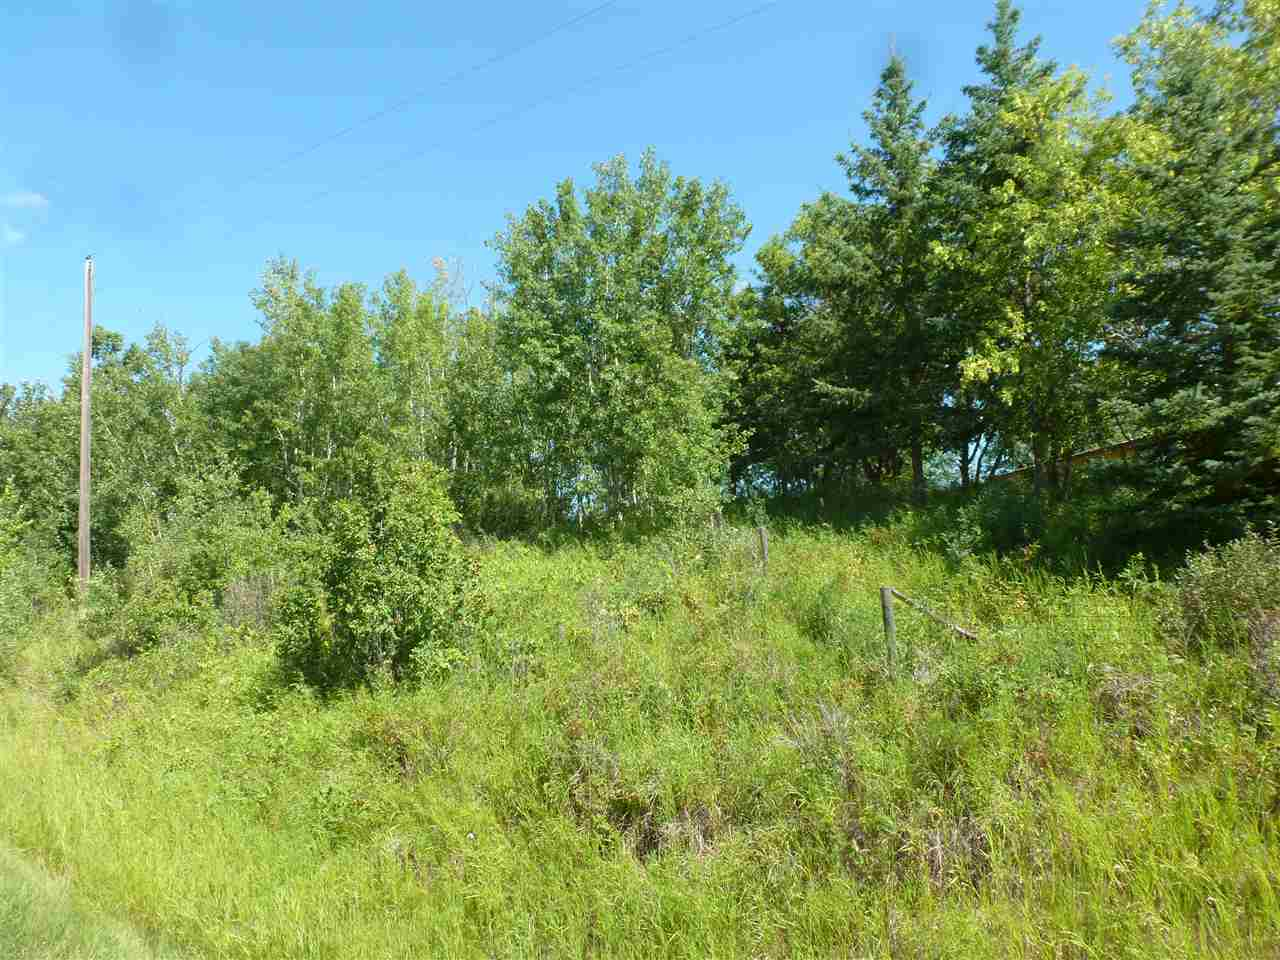 Range Rd 210 & North of Wye Rd, at $119,900